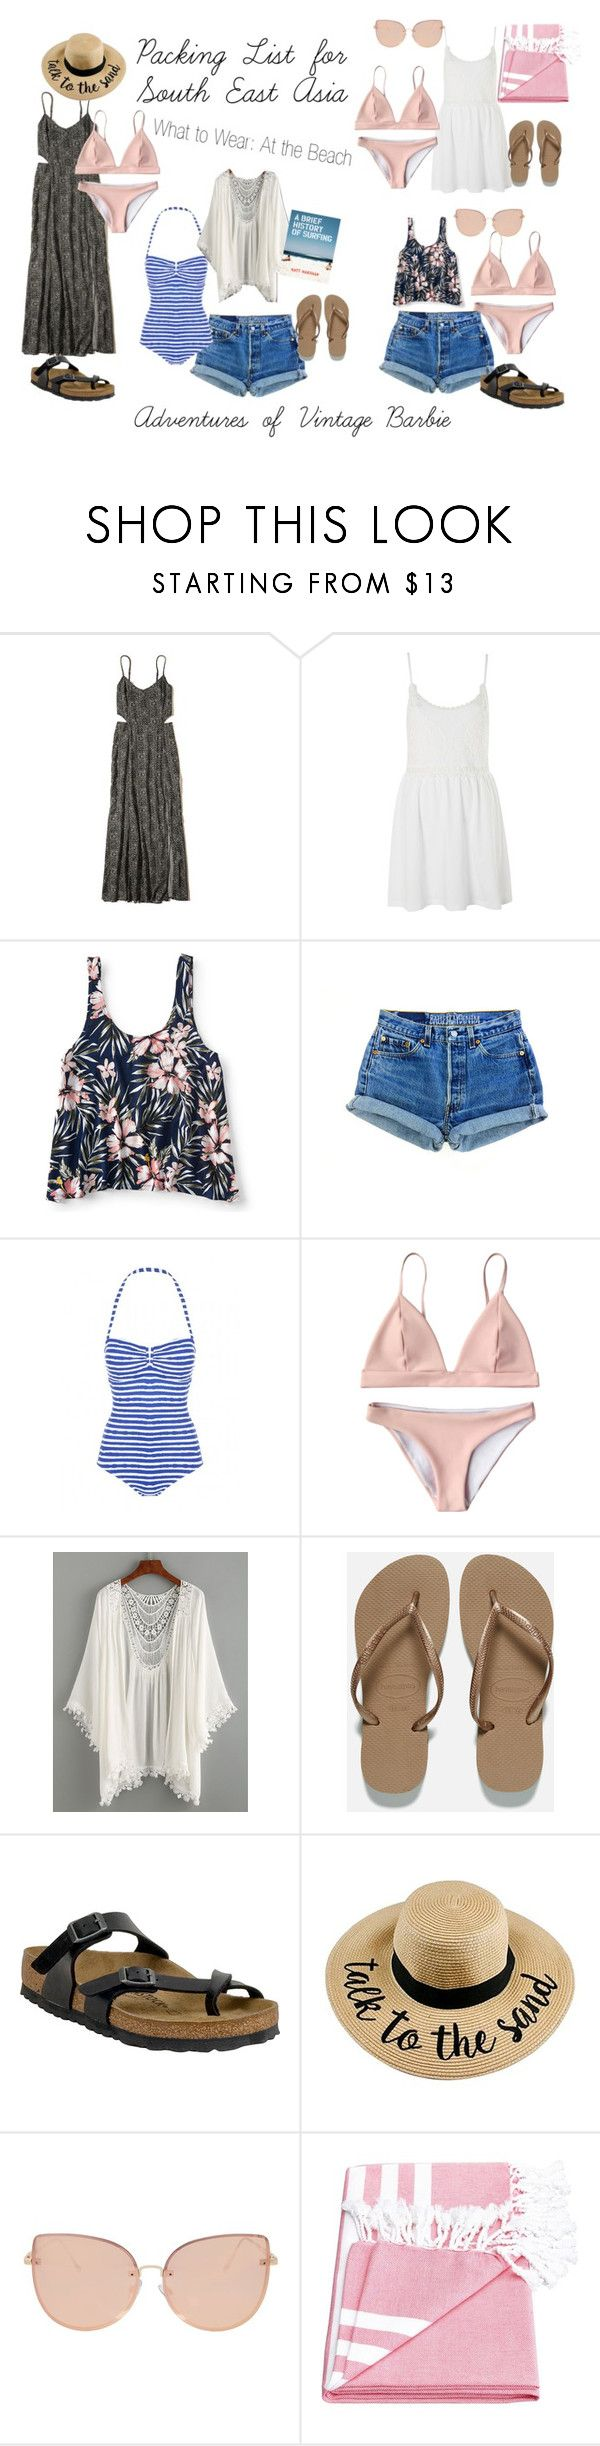 """""""South East Asia Packing List: what to wear at the beach"""" by vintagebarbie17 on Polyvore featuring Hollister Co., Topshop, Aéropostale, Havaianas, Birkenstock and Chronicle Books"""